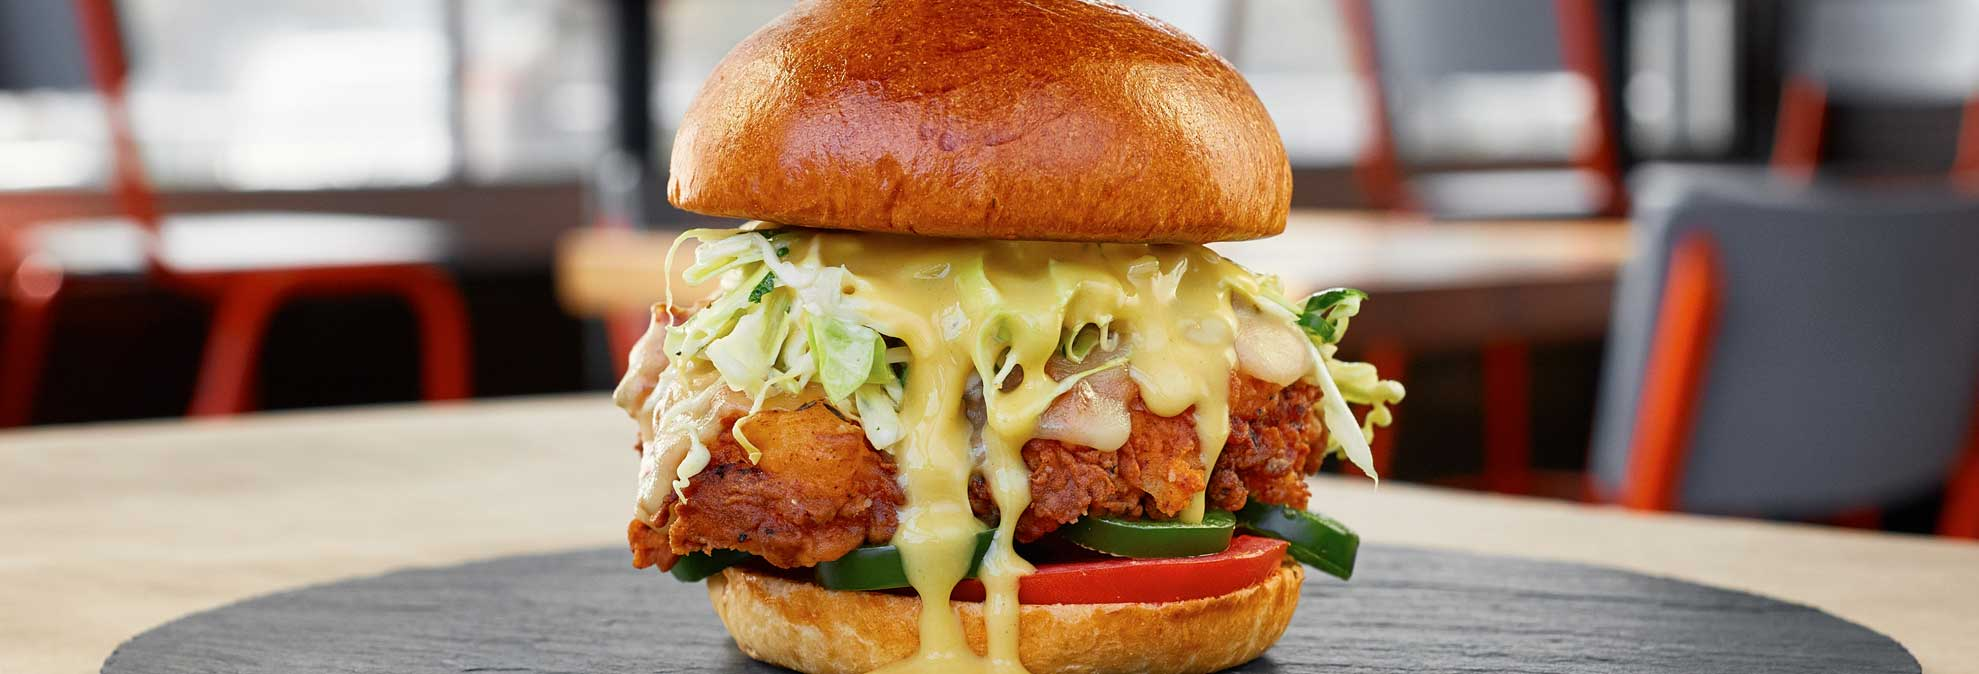 Where To Buy A Better Burger Consumer Reports